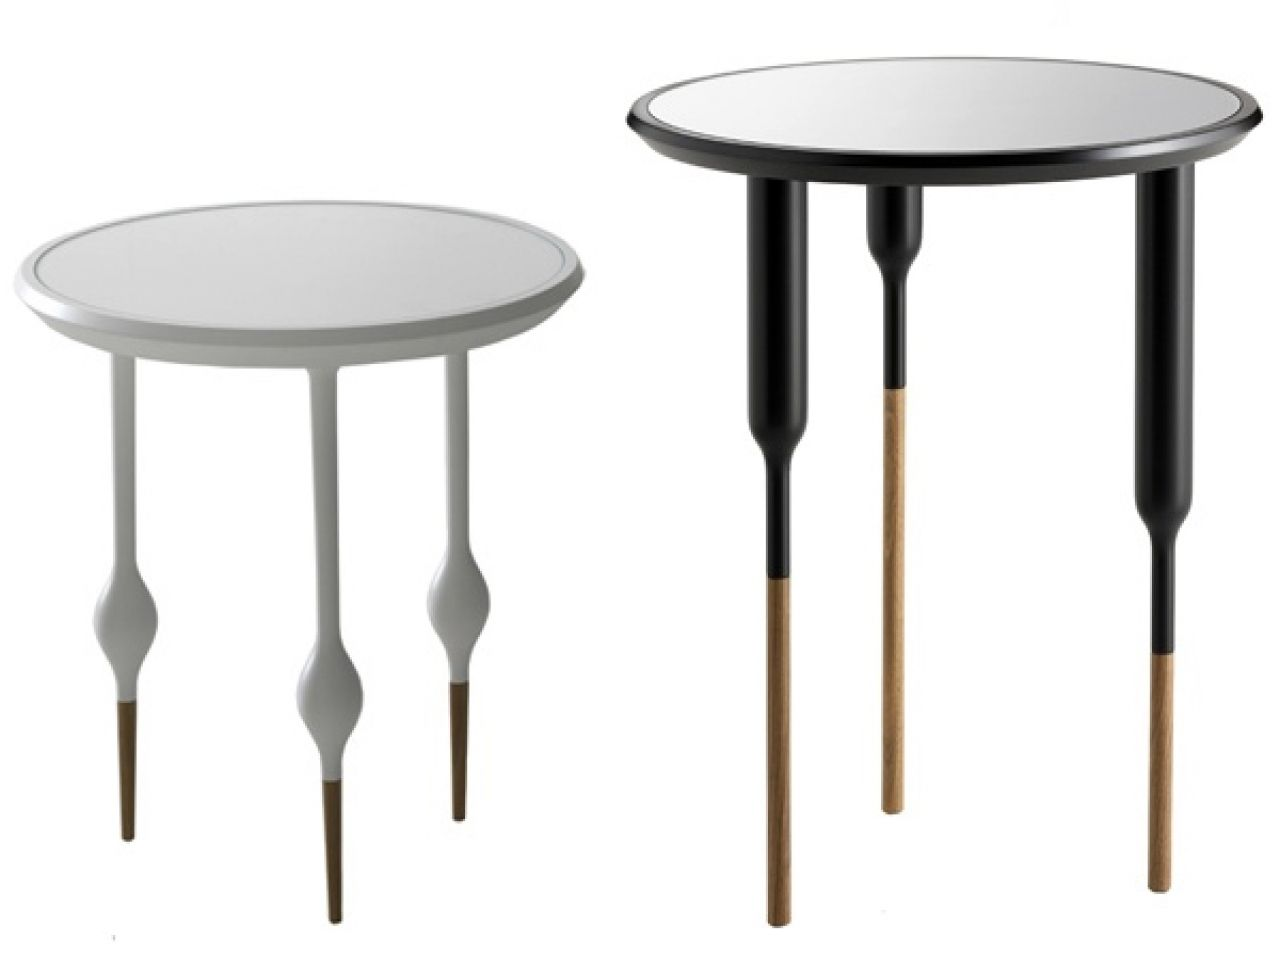 A Modern Interpretation Of The Century French Furniture Style, These  U0027Philippe Iu0027 Small Side Tables And Coffee Tables By Designer Sam Baron Are  A [.